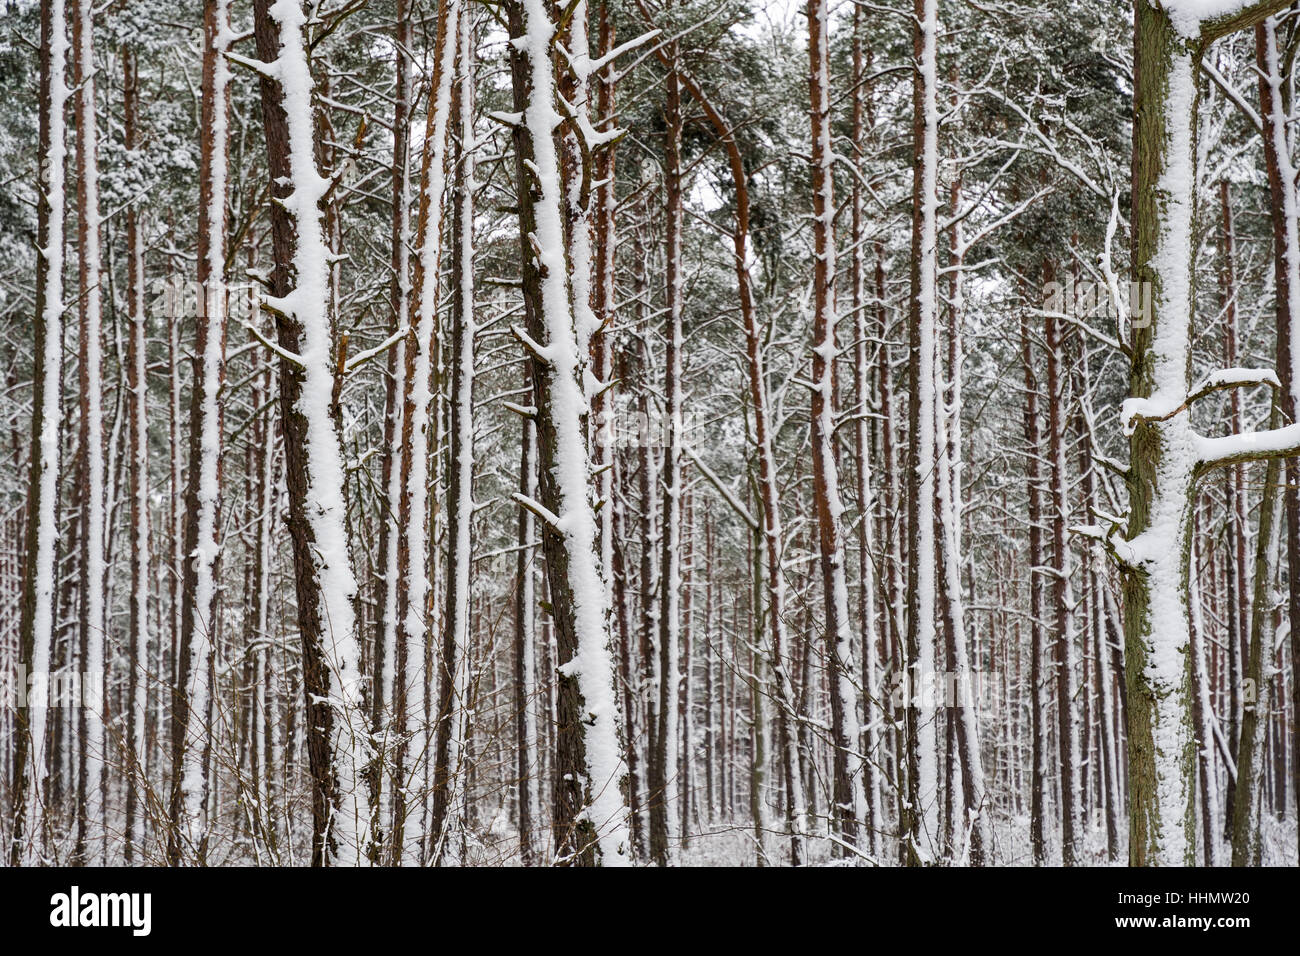 Snowy tree trunks in a pine tree forest after the snow storm Stock Photo